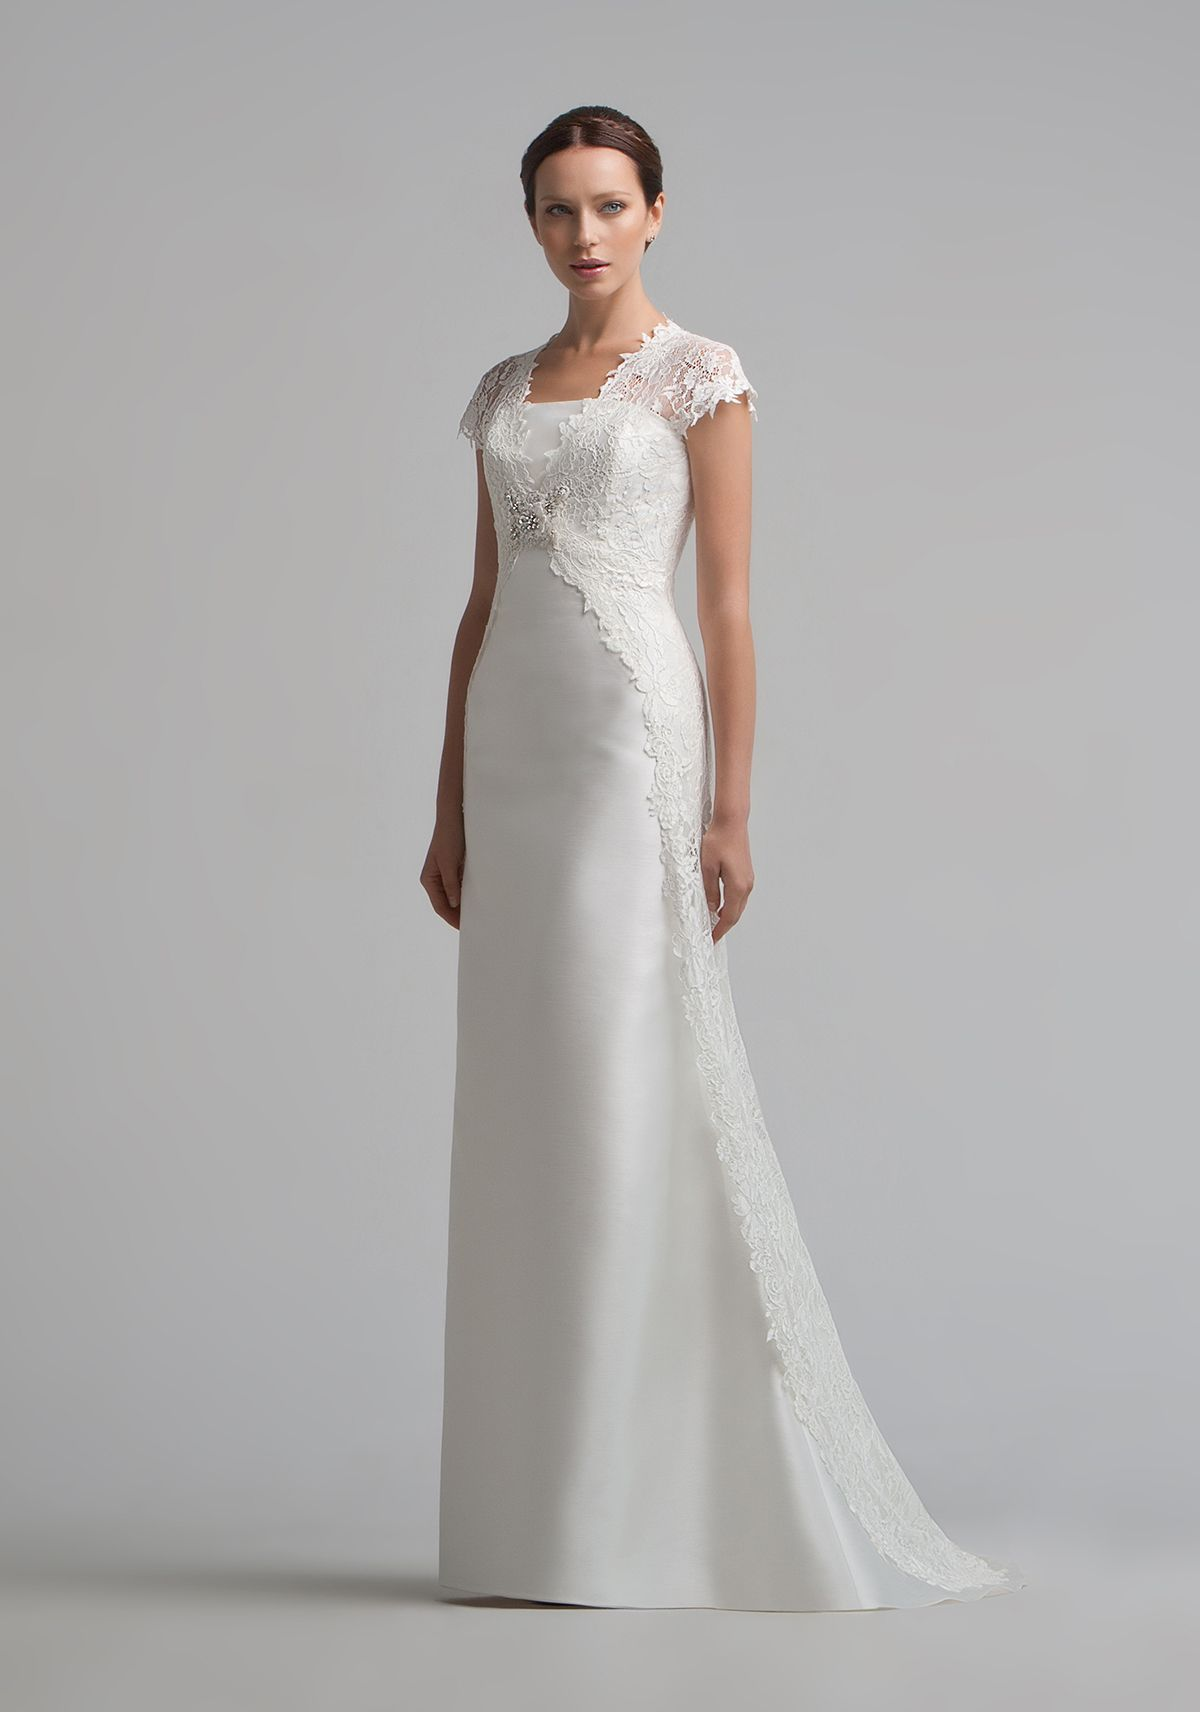 c7740a85278 A Straight cut Satin Wedding Dress. Can be combined with a Bridal Bolero.  Bolero is sold separately.